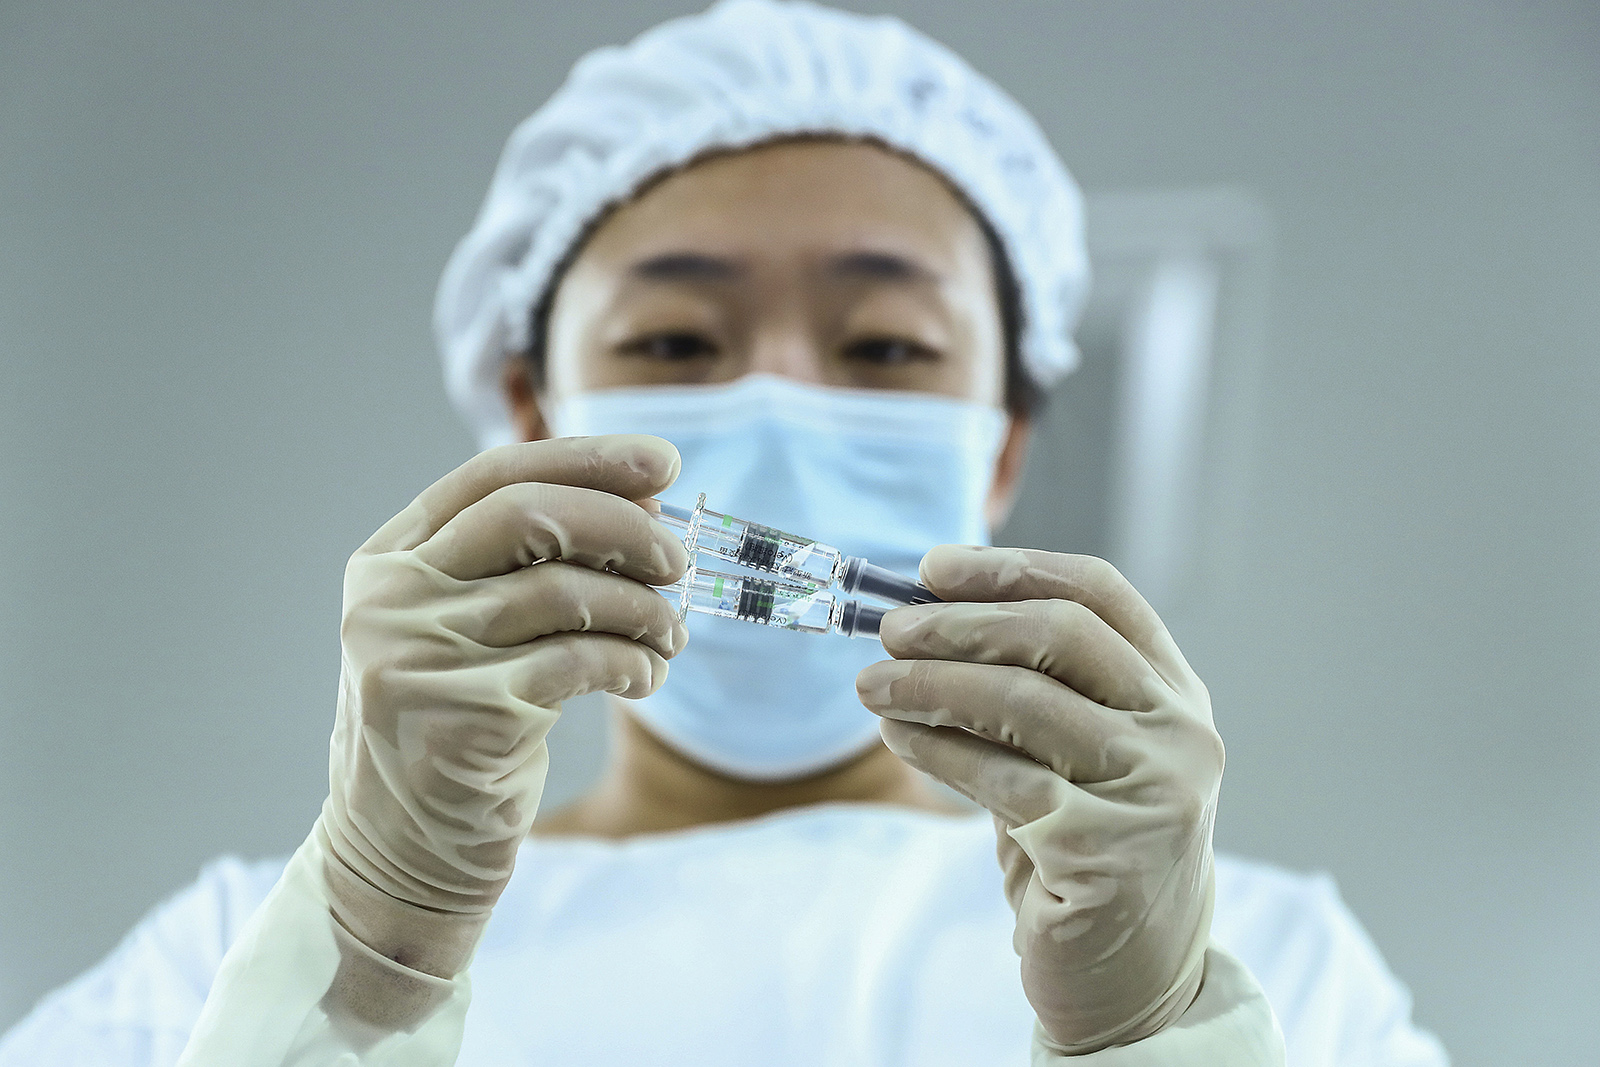 A staff member inspects syringes of Covid-19 inactivated vaccine products at a packaging plant of the Beijing Biological Products Institute Co., Ltd, a unit of state-owned Sinopharm, in Beijing.